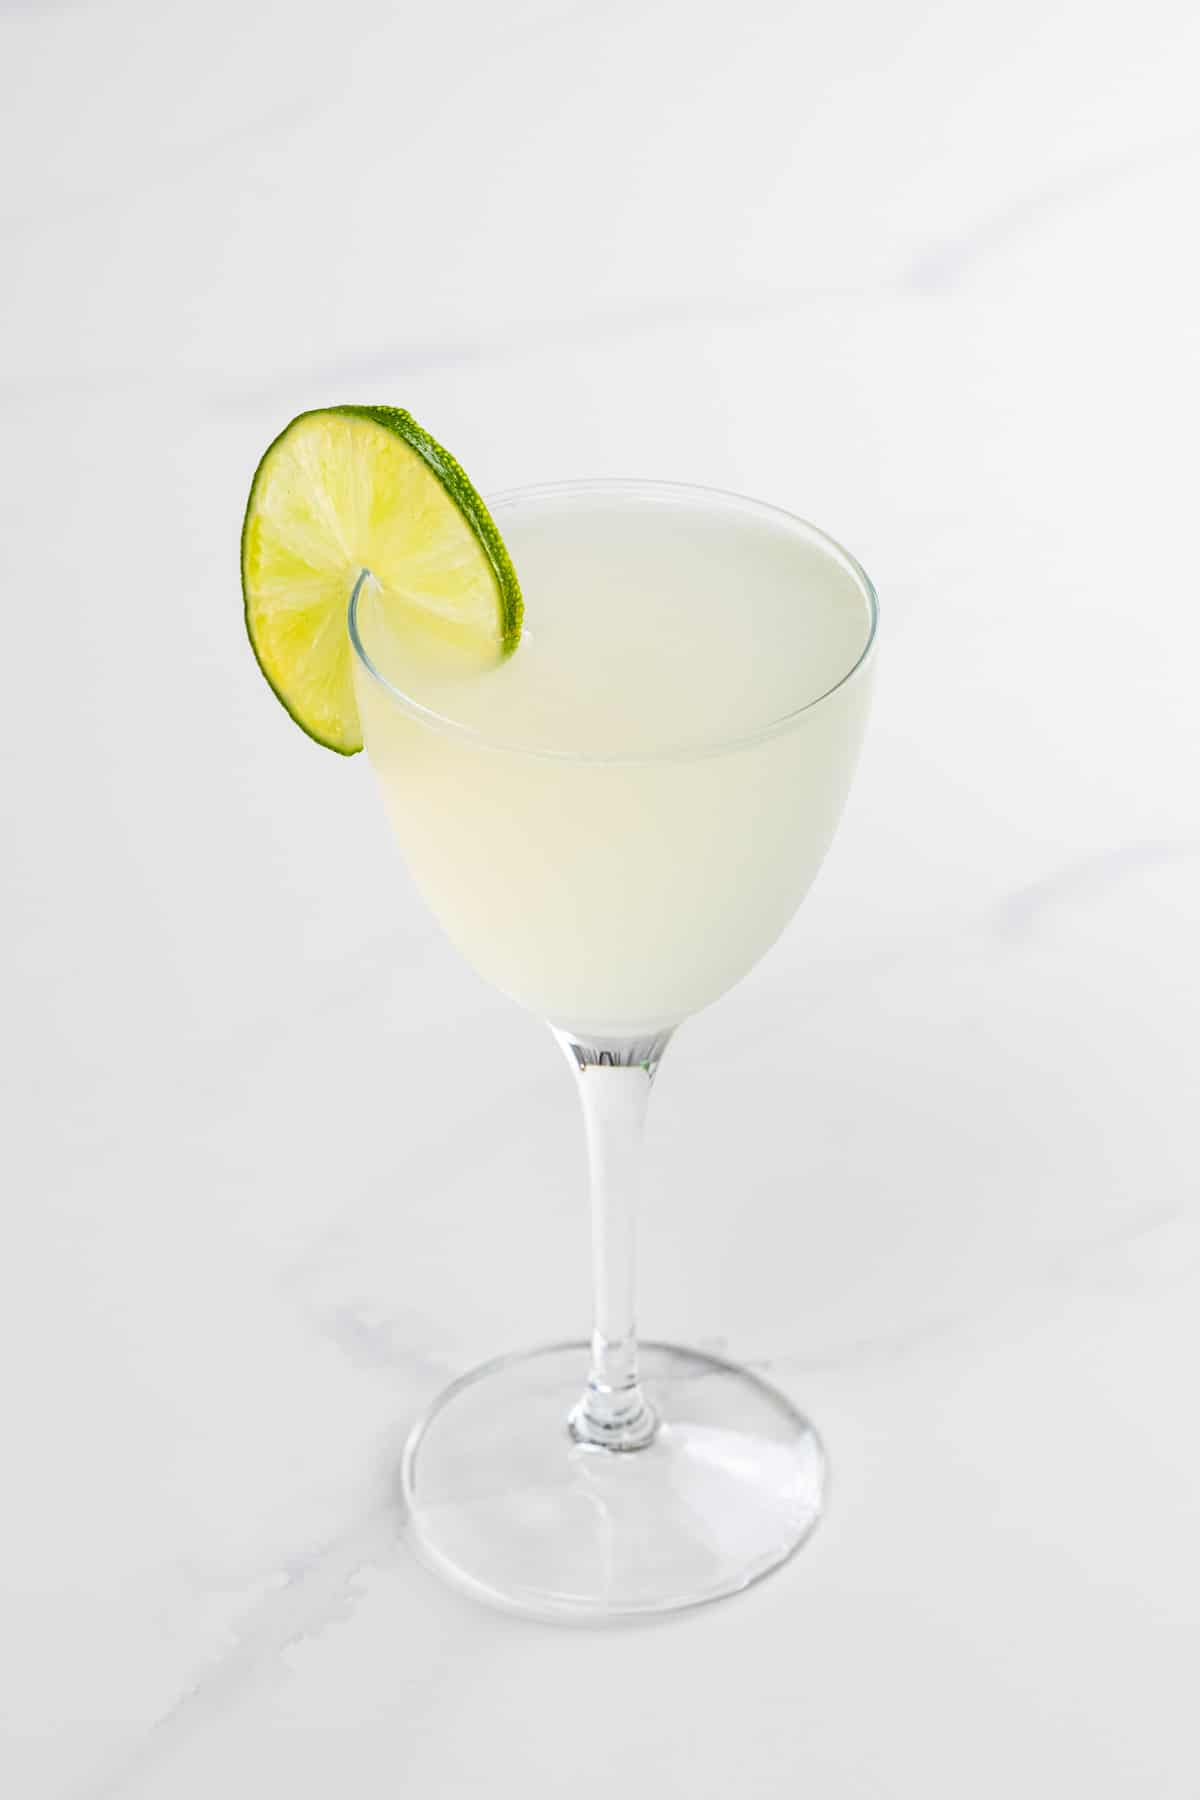 classic daiquiri in a nick and nora glass with a lime wheel garnish